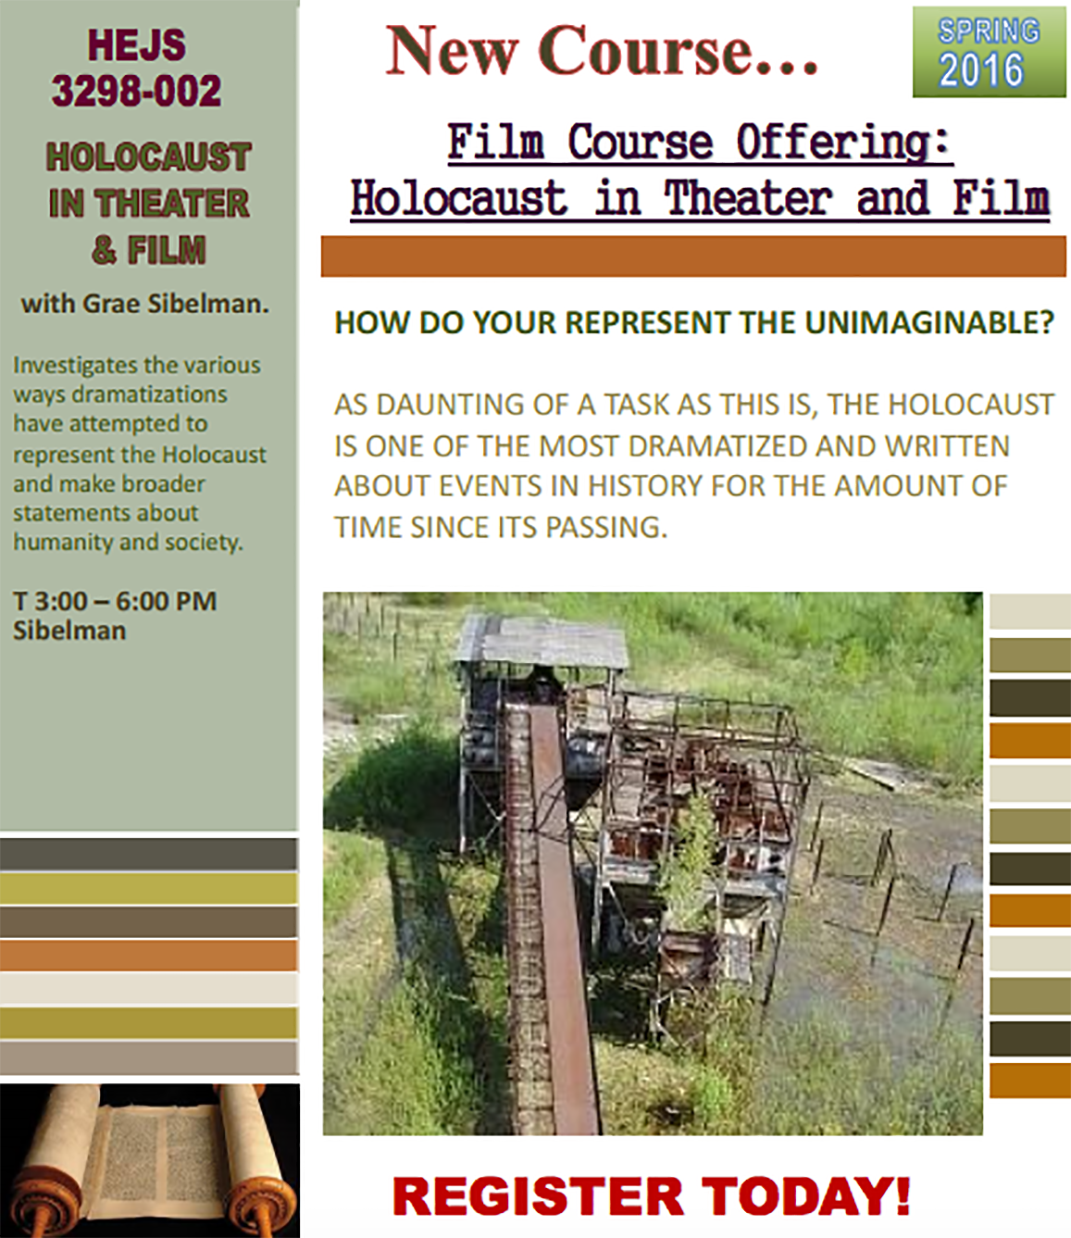 The course, Holocaust in Theater and Film, was created through the combined efforts of the Department of Hebrew and Judaic Studies,the Department of English and the Department of Dramatic Arts. It will be taught by adjunct faculty member Grae Sibelman. (Courtesy/Department of Hebrew and Judaic Studies)